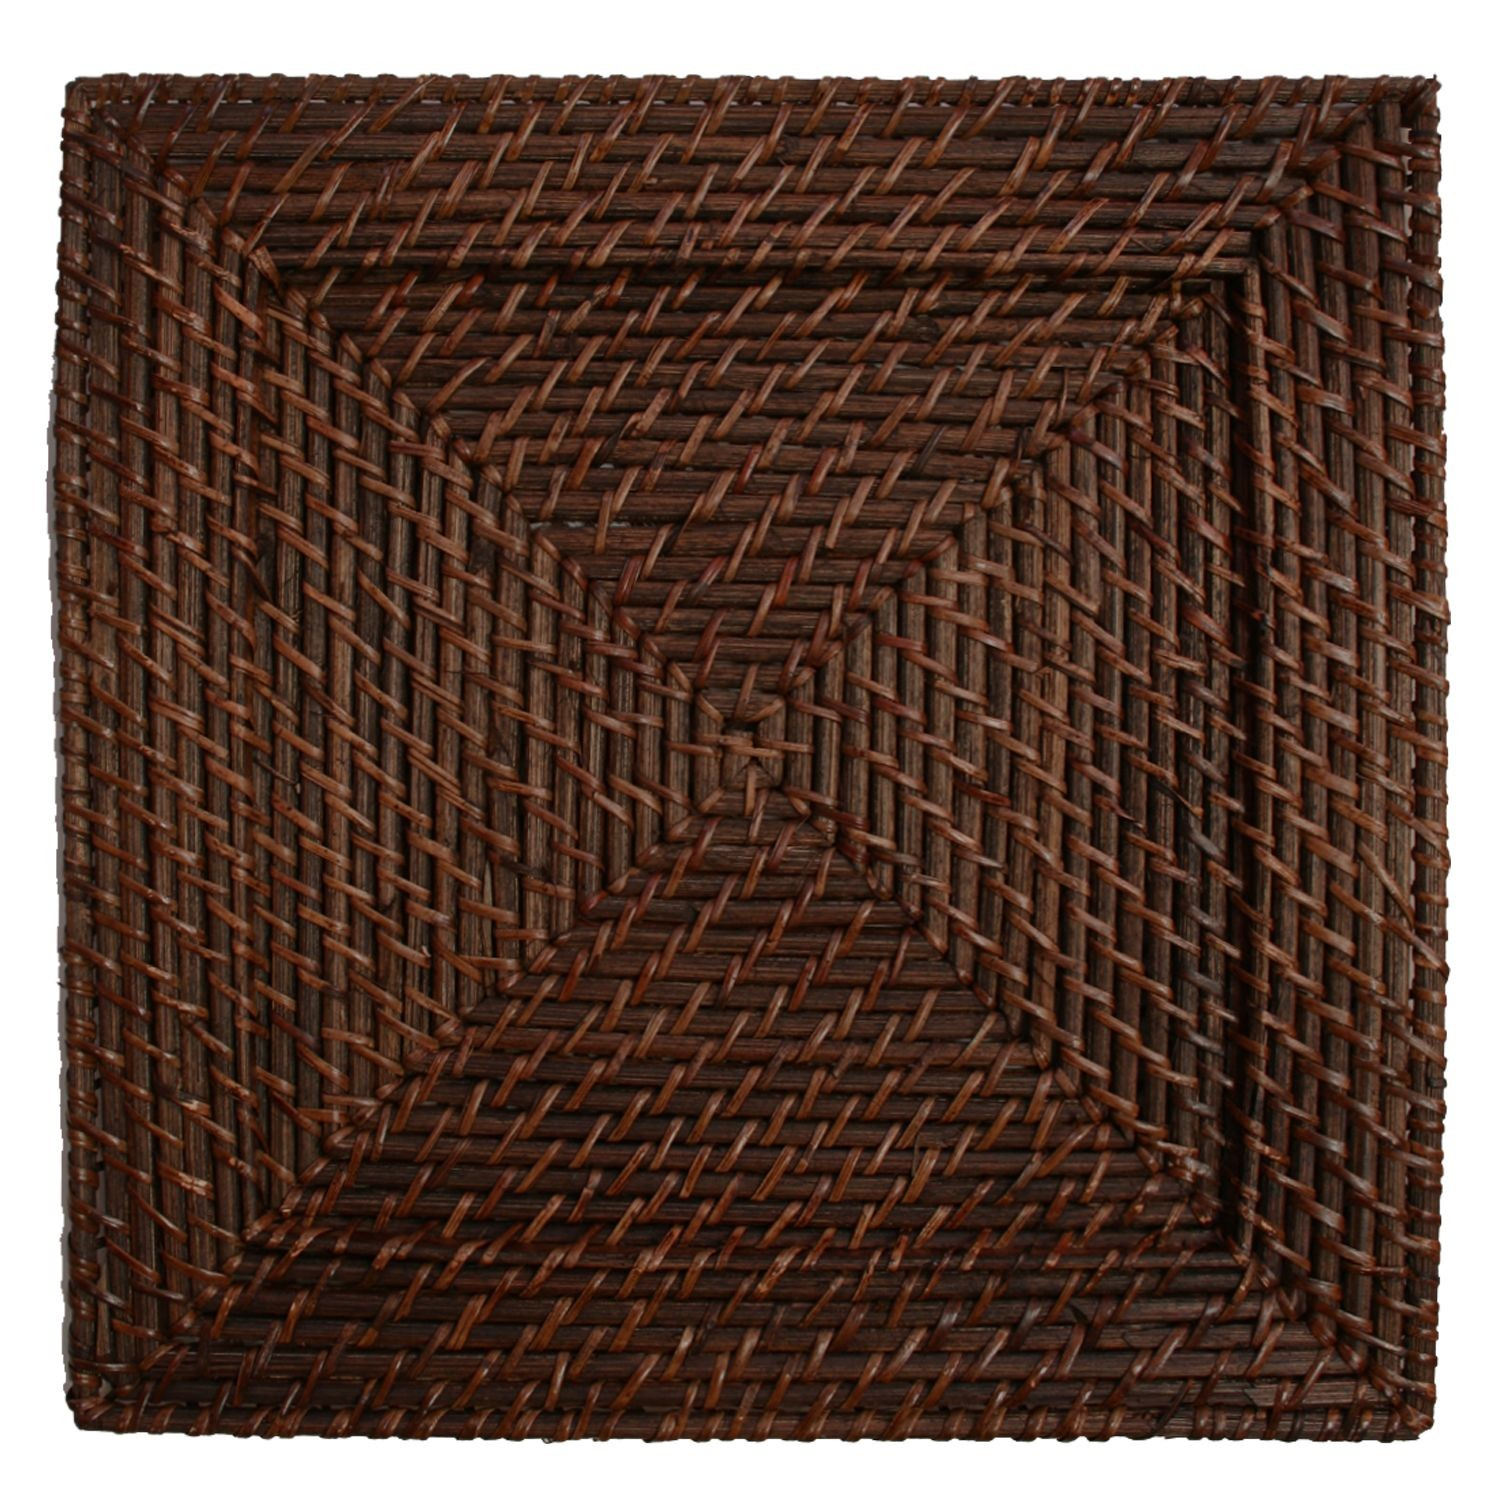 The Jay Companies 1660147 Square Dark Brown Rattan Charger Plate 13""